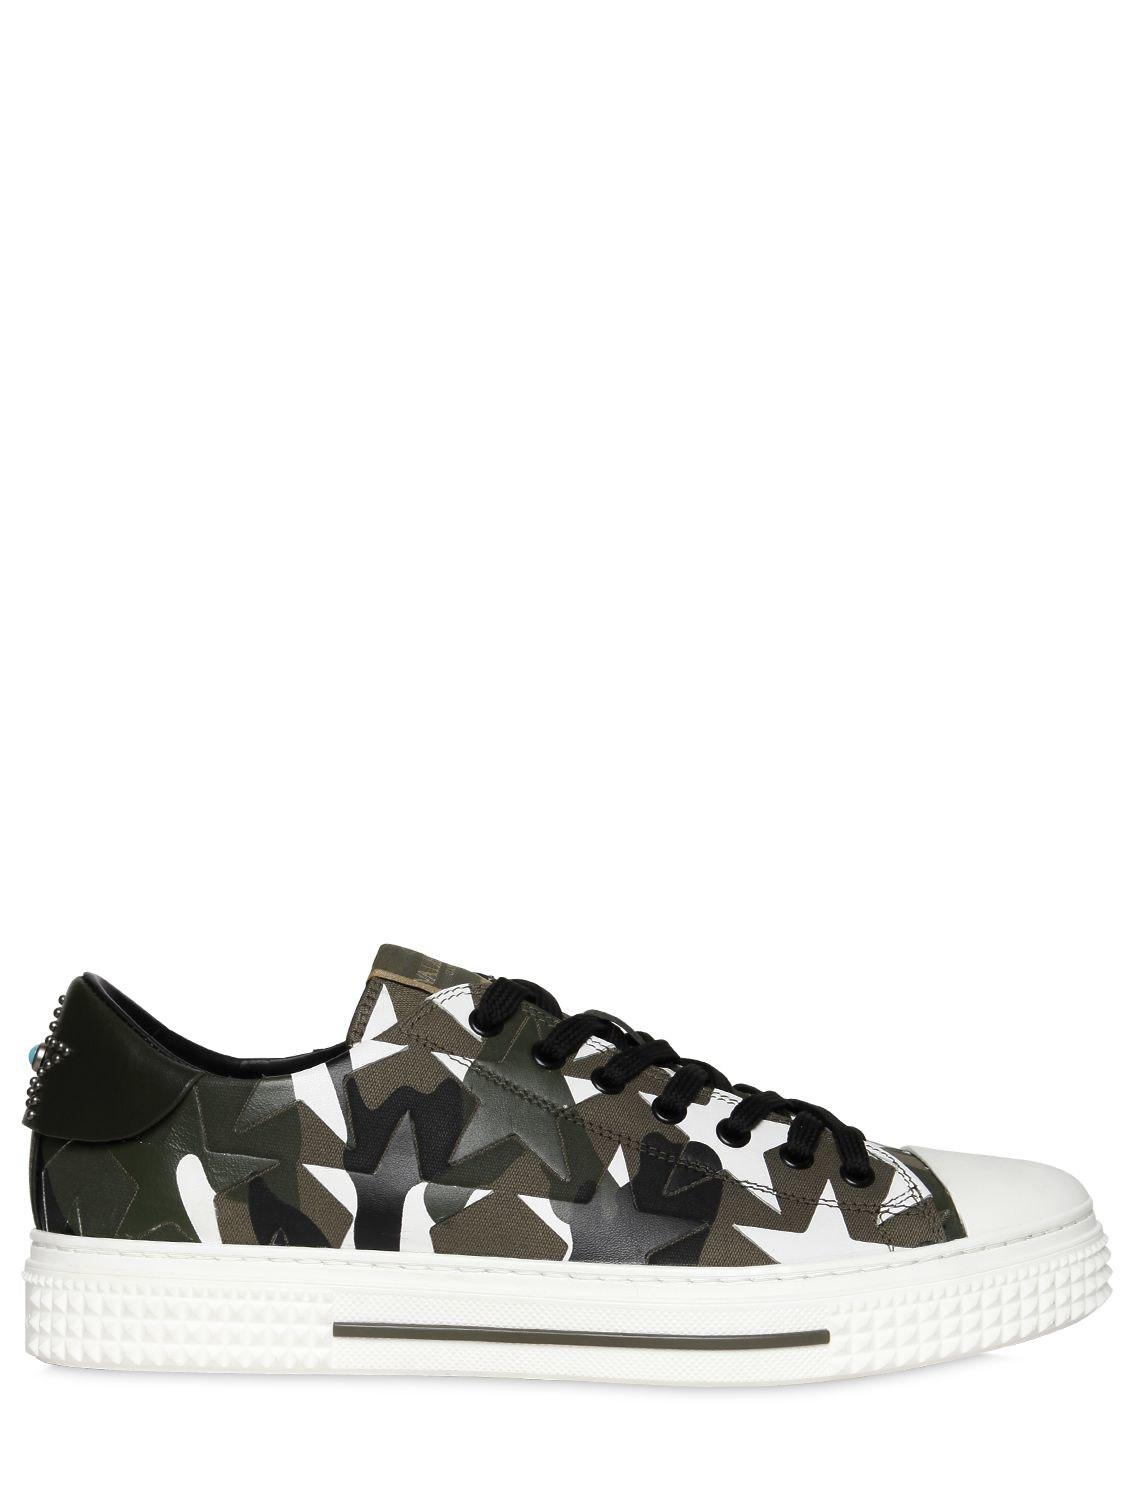 Valentino. Men's Black Camustars Leather & Canvas Sneakers